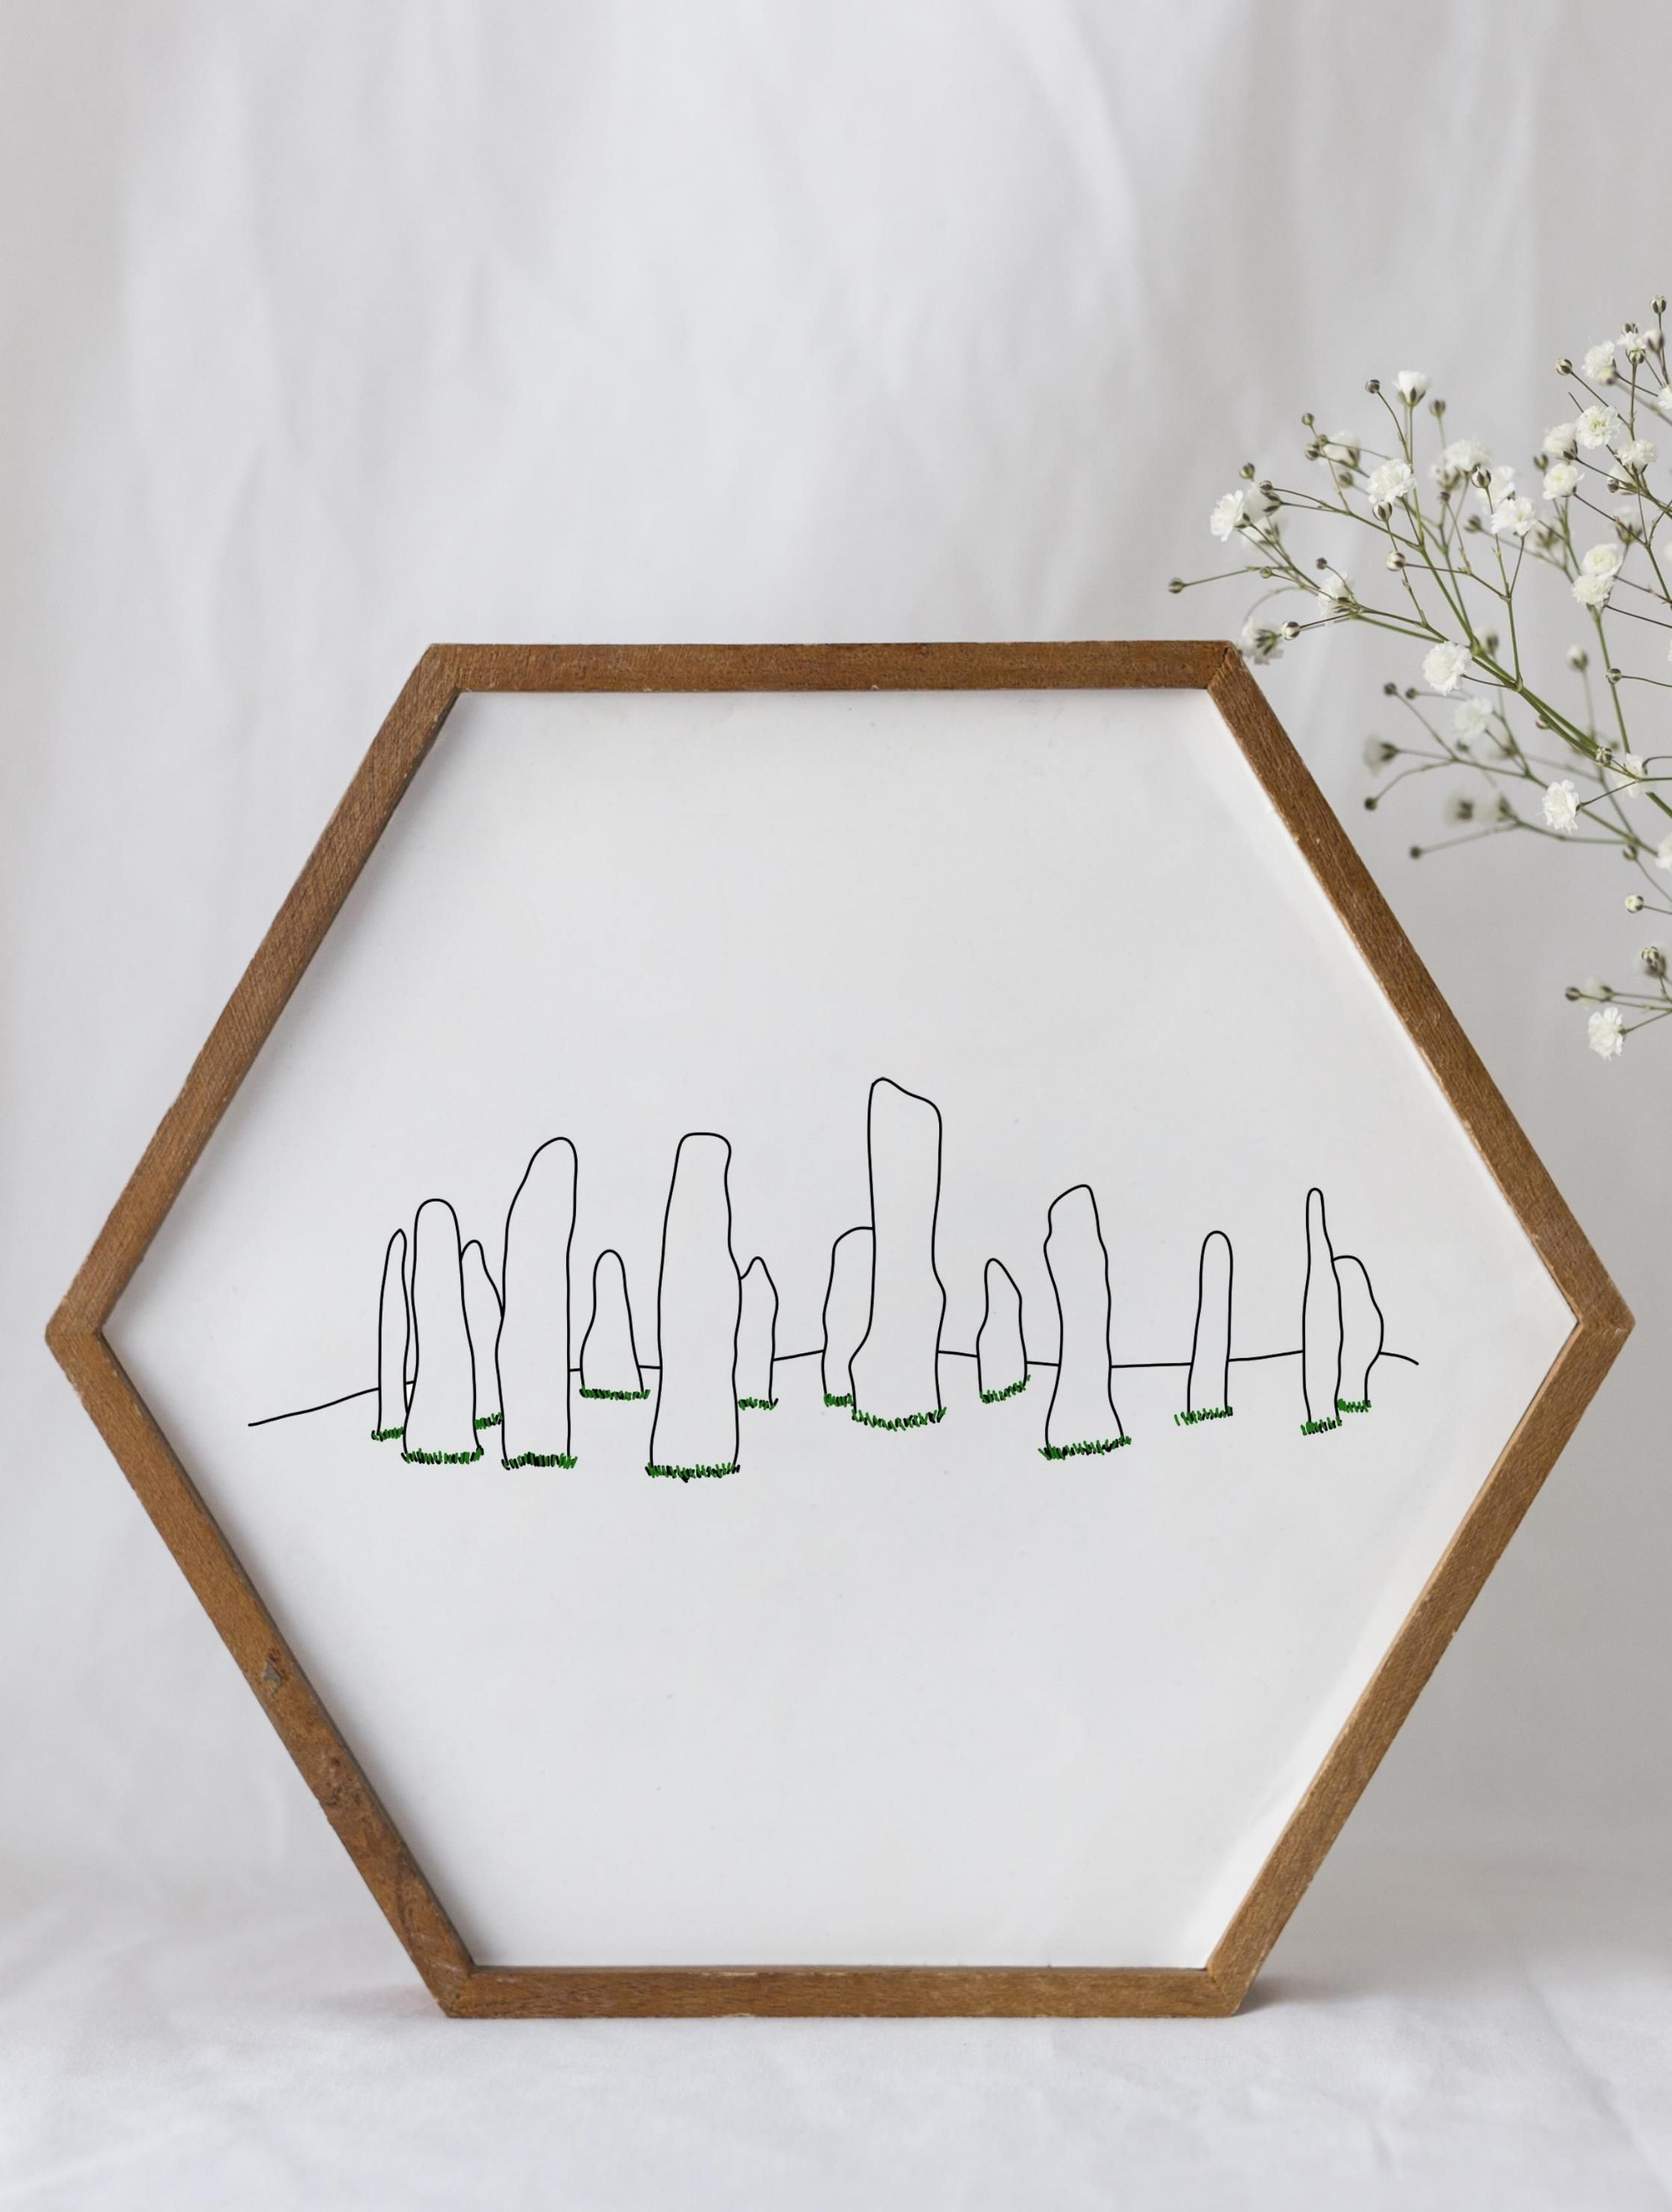 Stone Circle | Standing Stones | Scotland | Printable | Line Drawing | Scottish Wall Art | Landmark